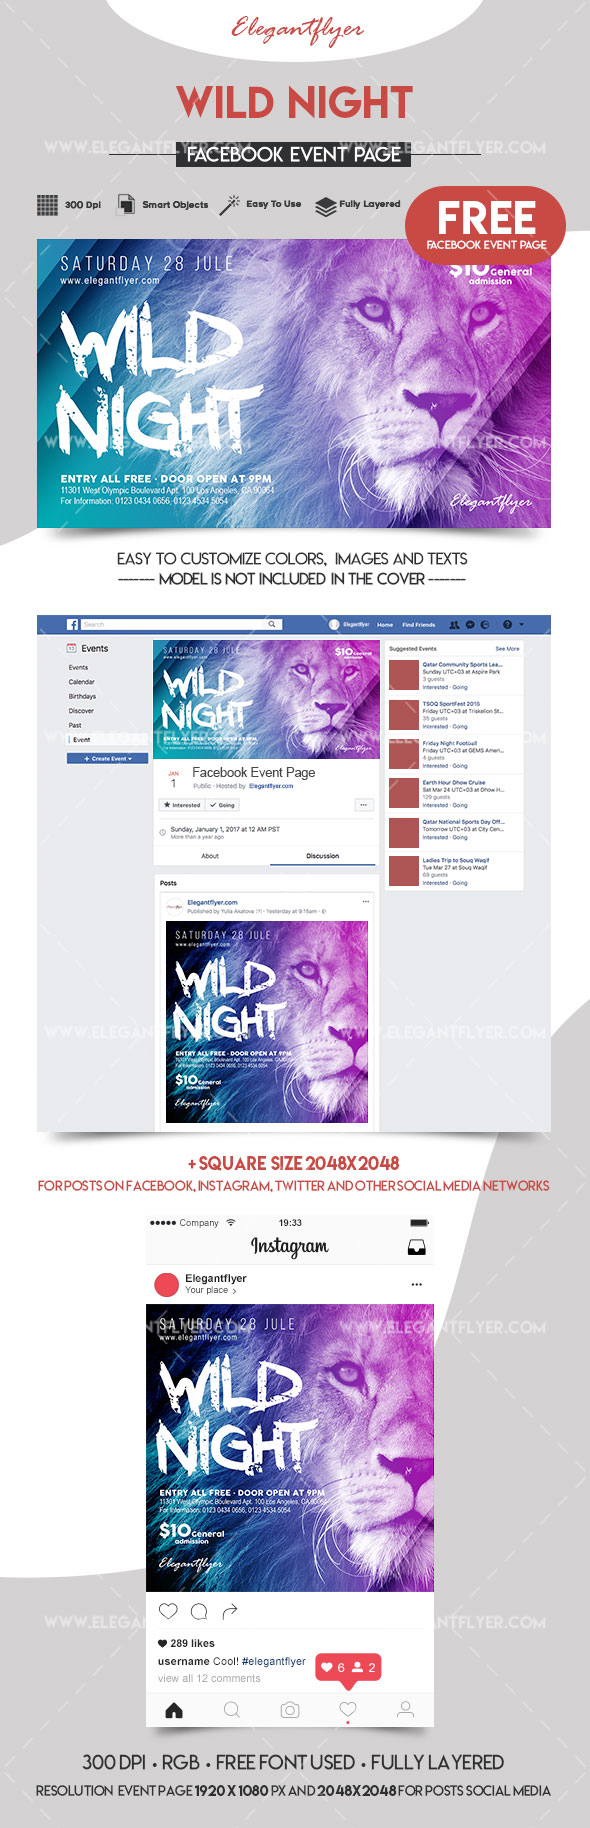 Wild Night – Free Facebook Event Page